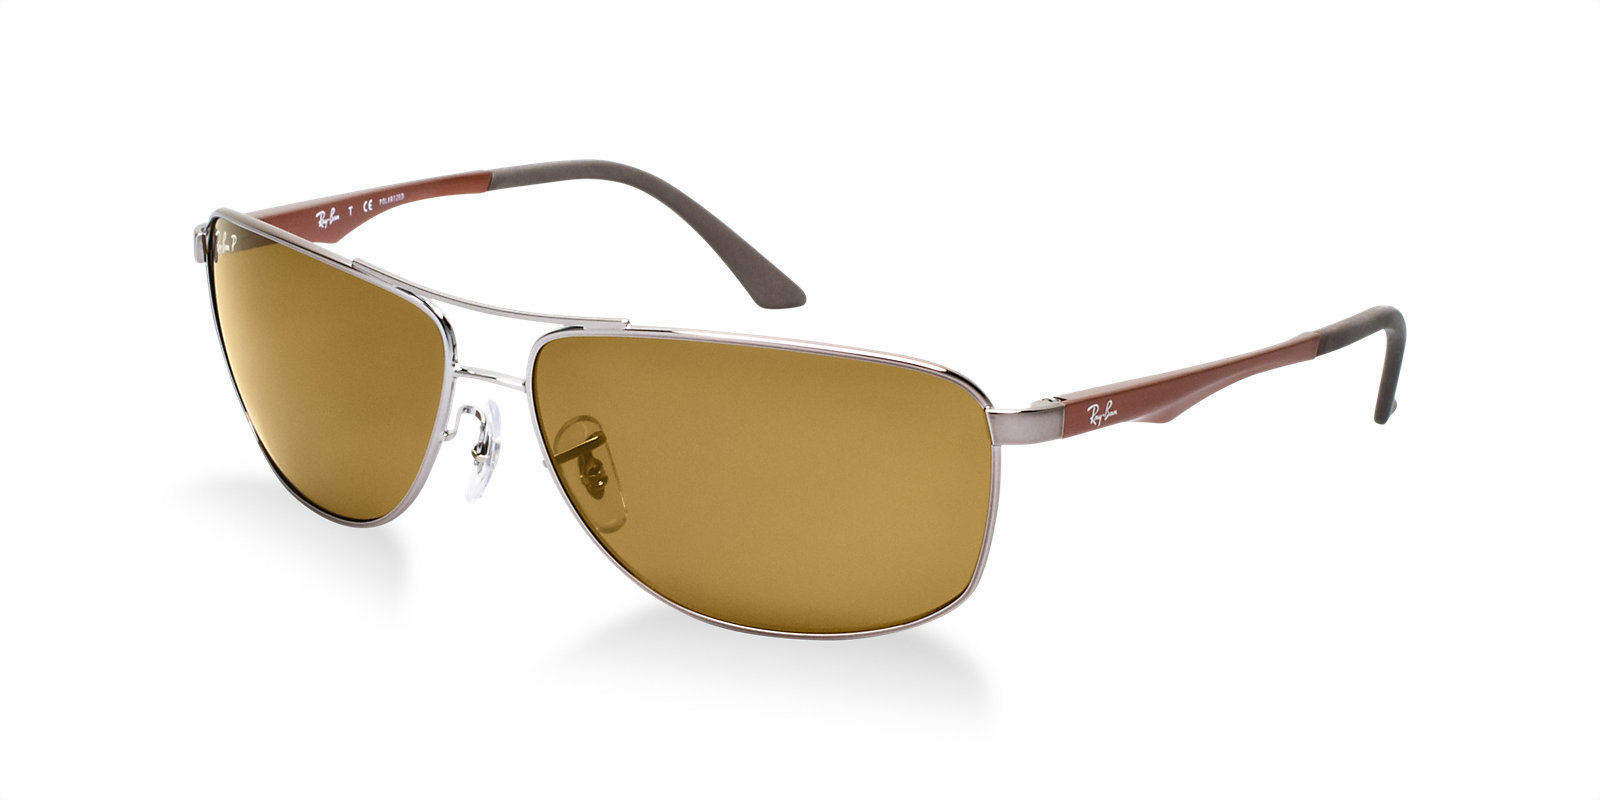 Ray-Ban-Sunglasses-for-Men (18)